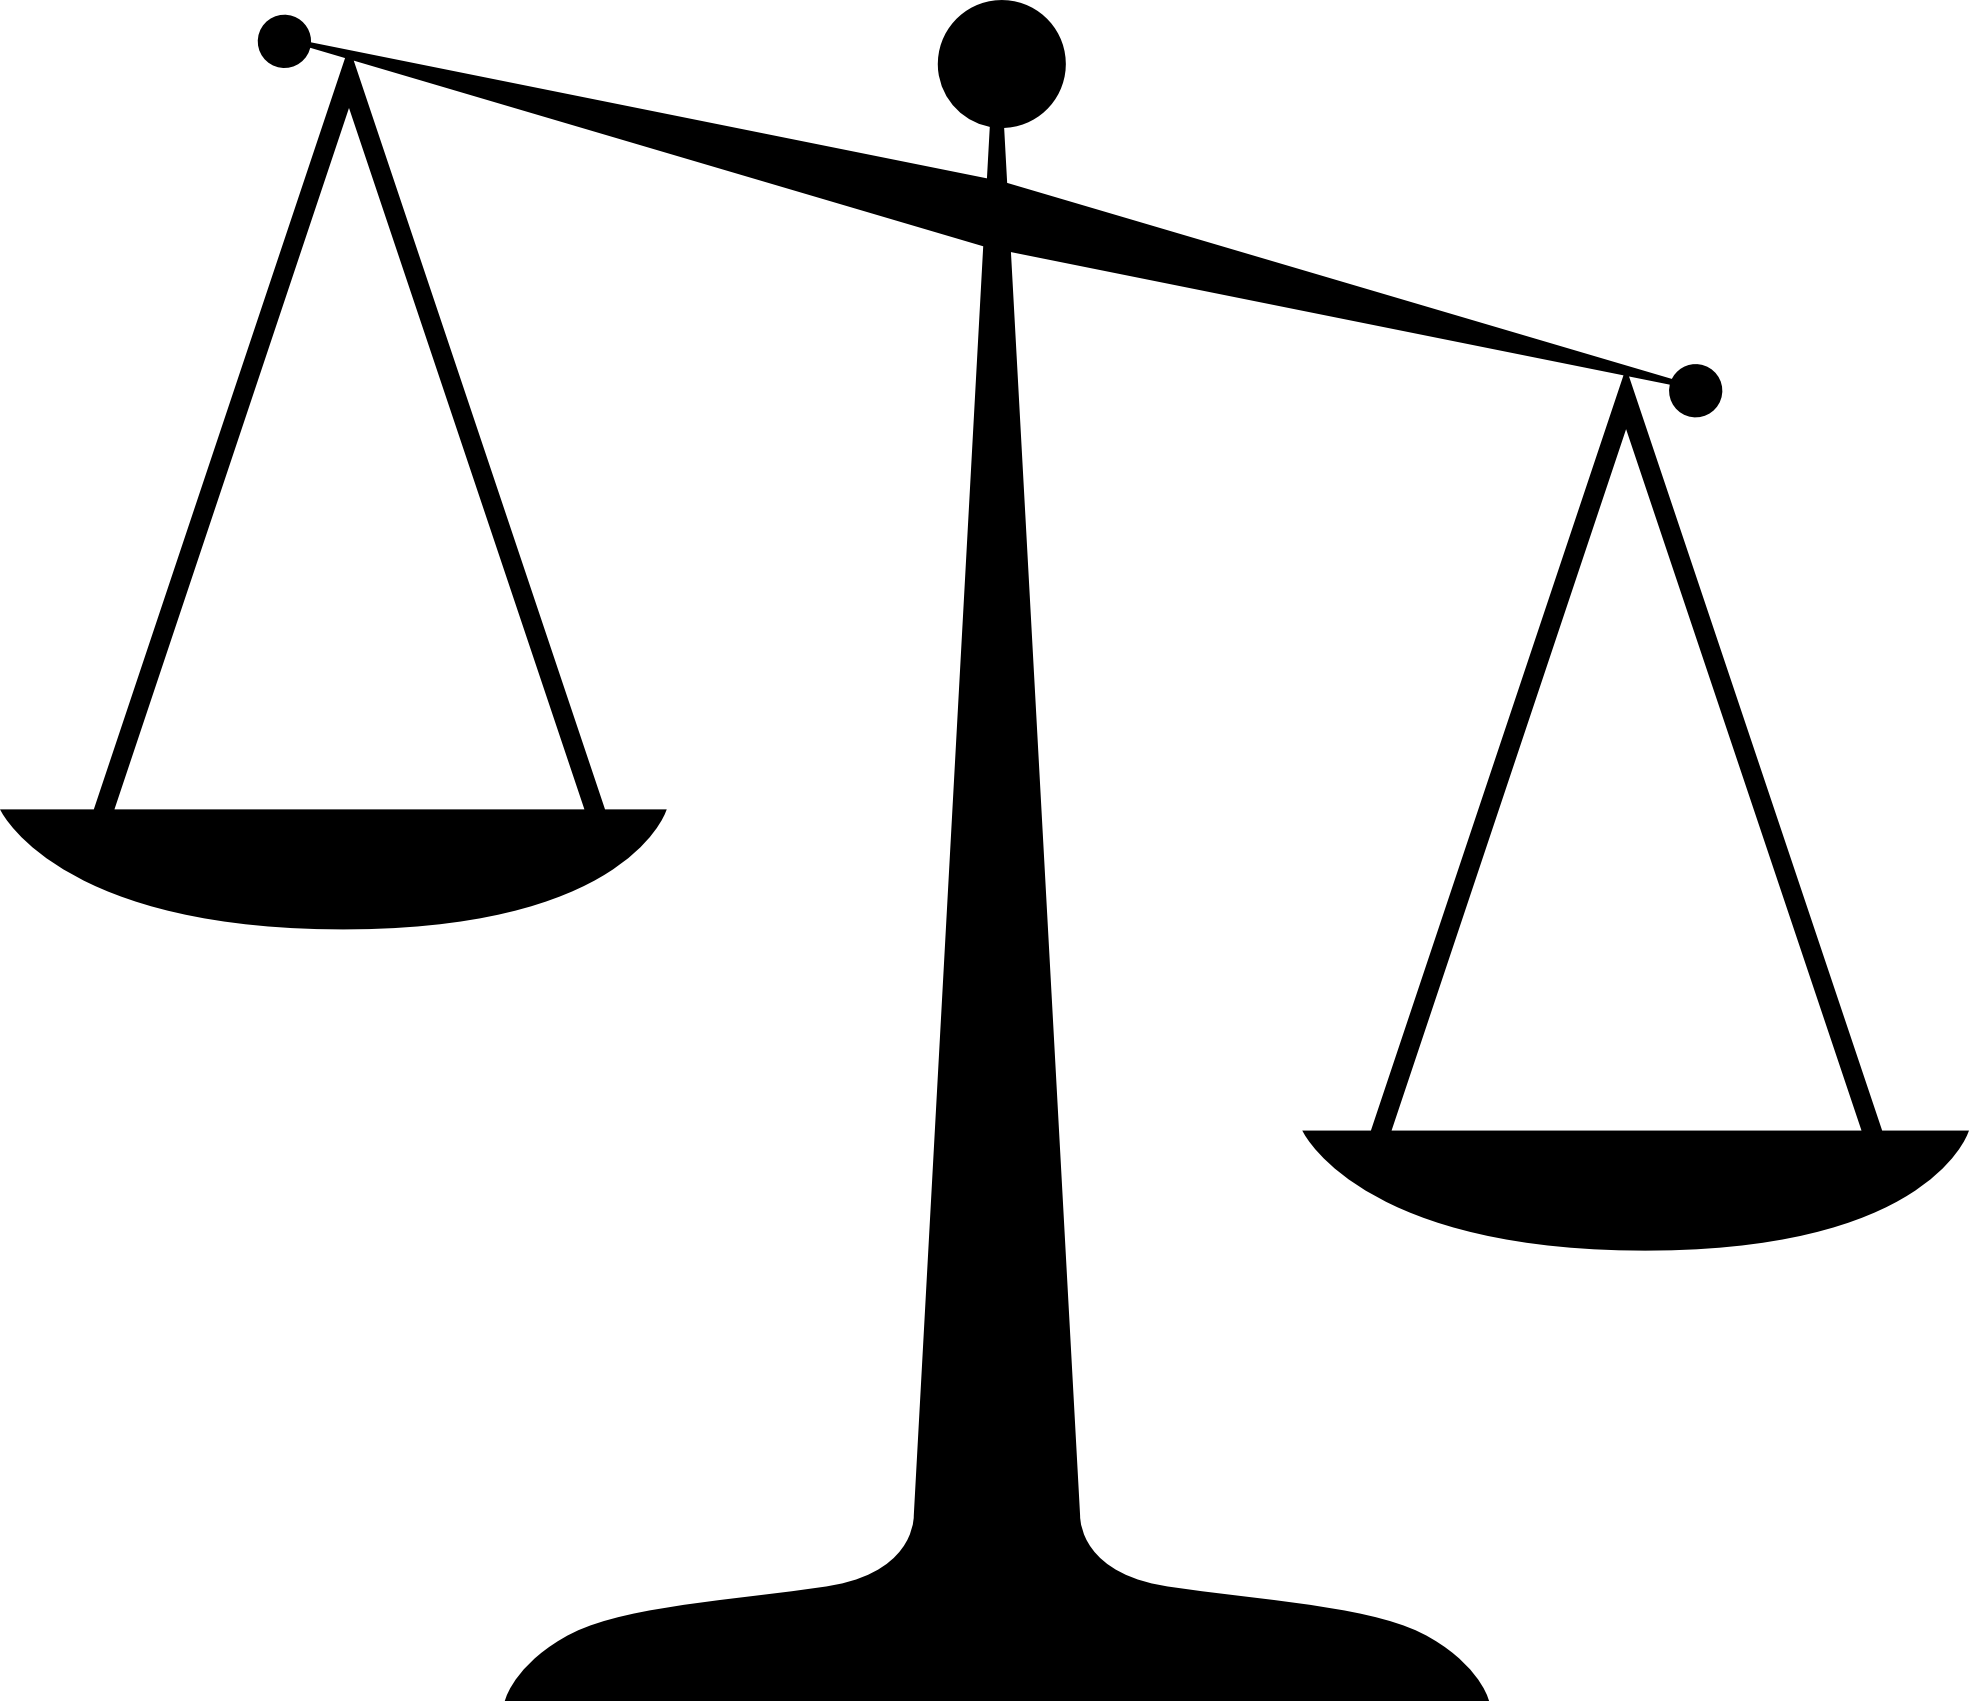 Justice Balance Scale, Decorative Horizontal Line Png Fancy line.